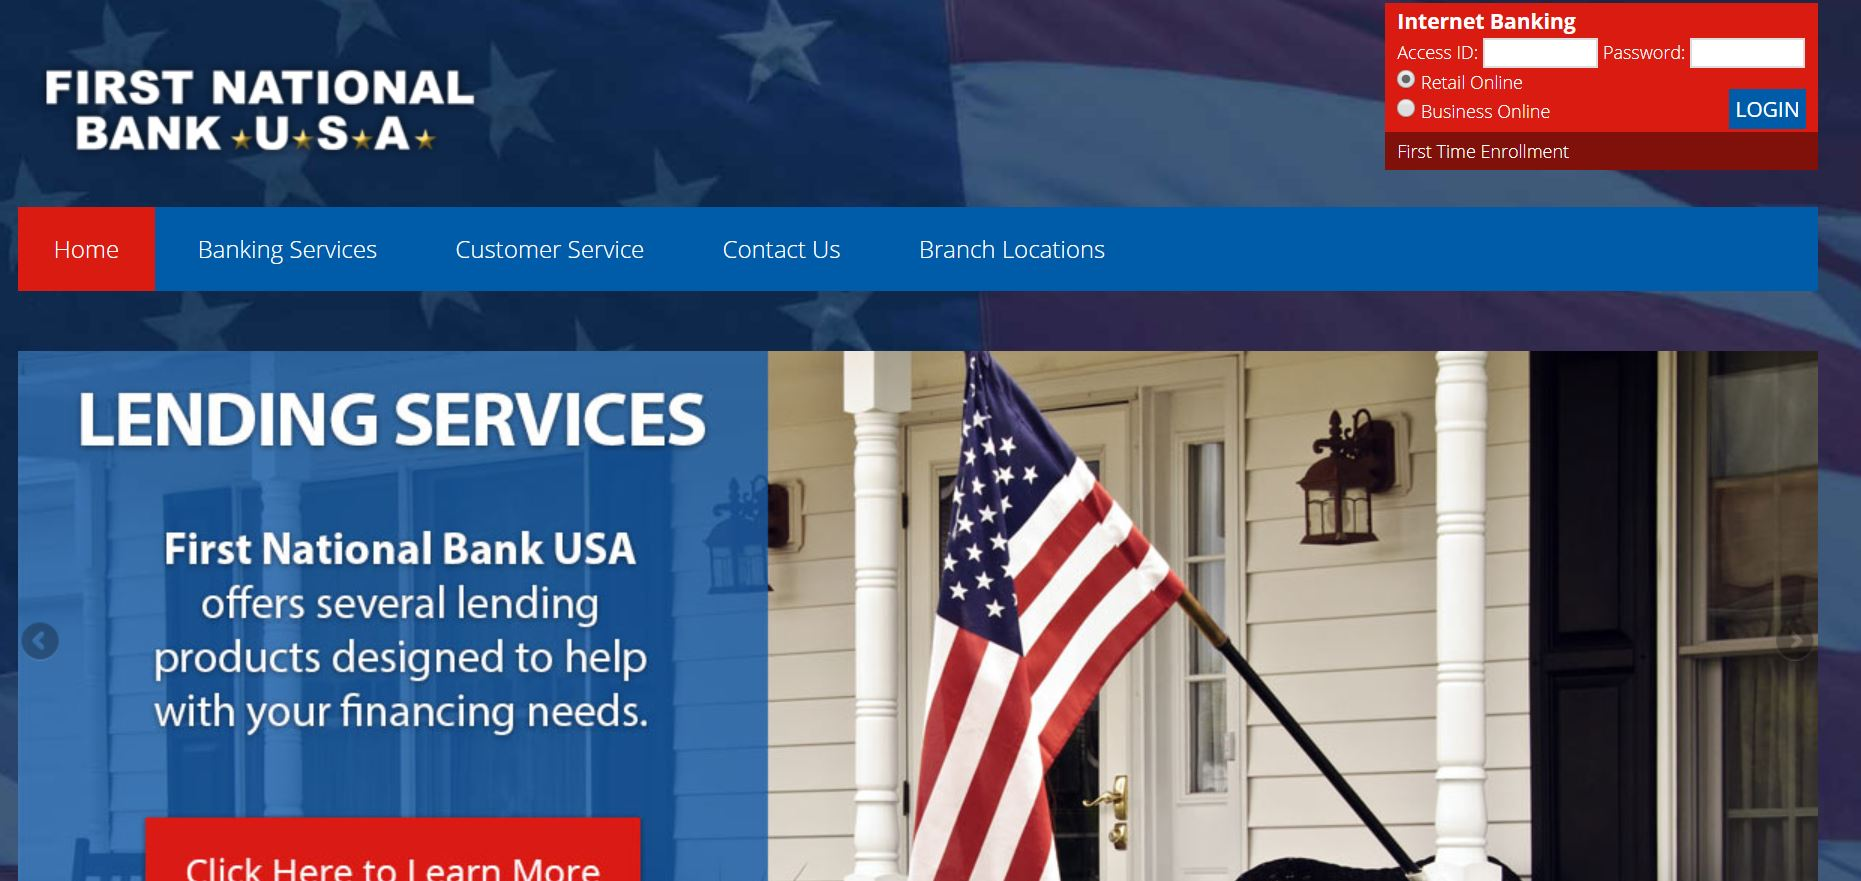 FNB – First National Bank USA : Online Bank Login |